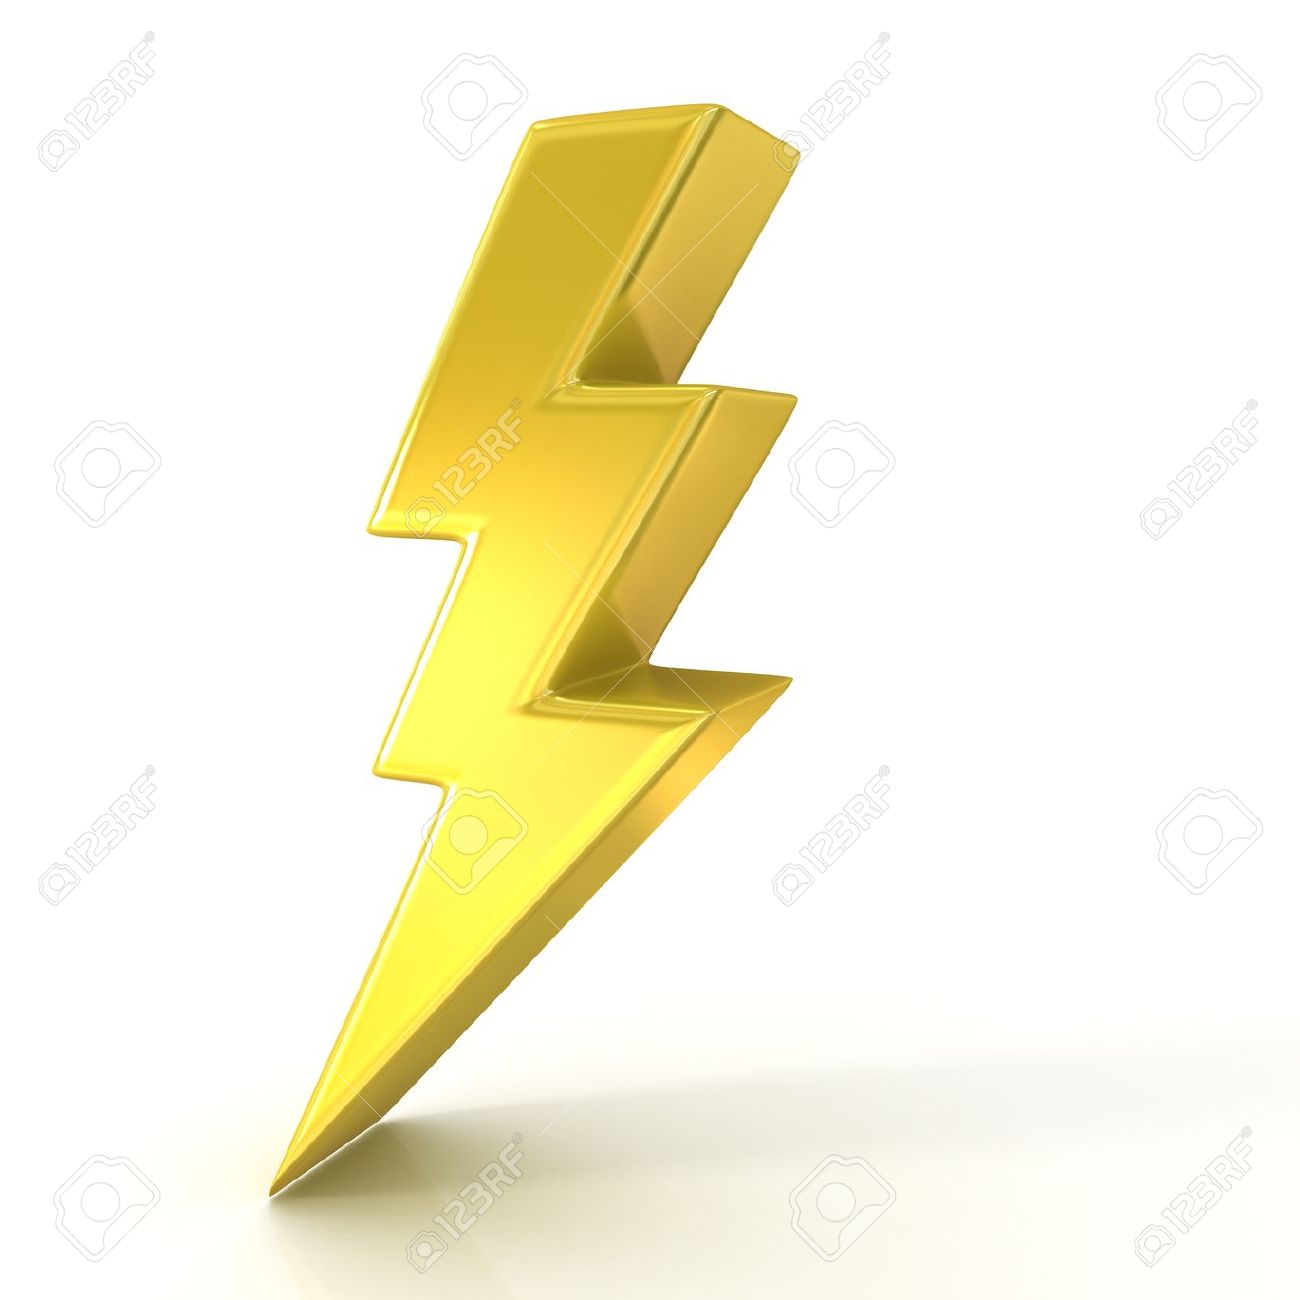 Golden Lightning Bolt